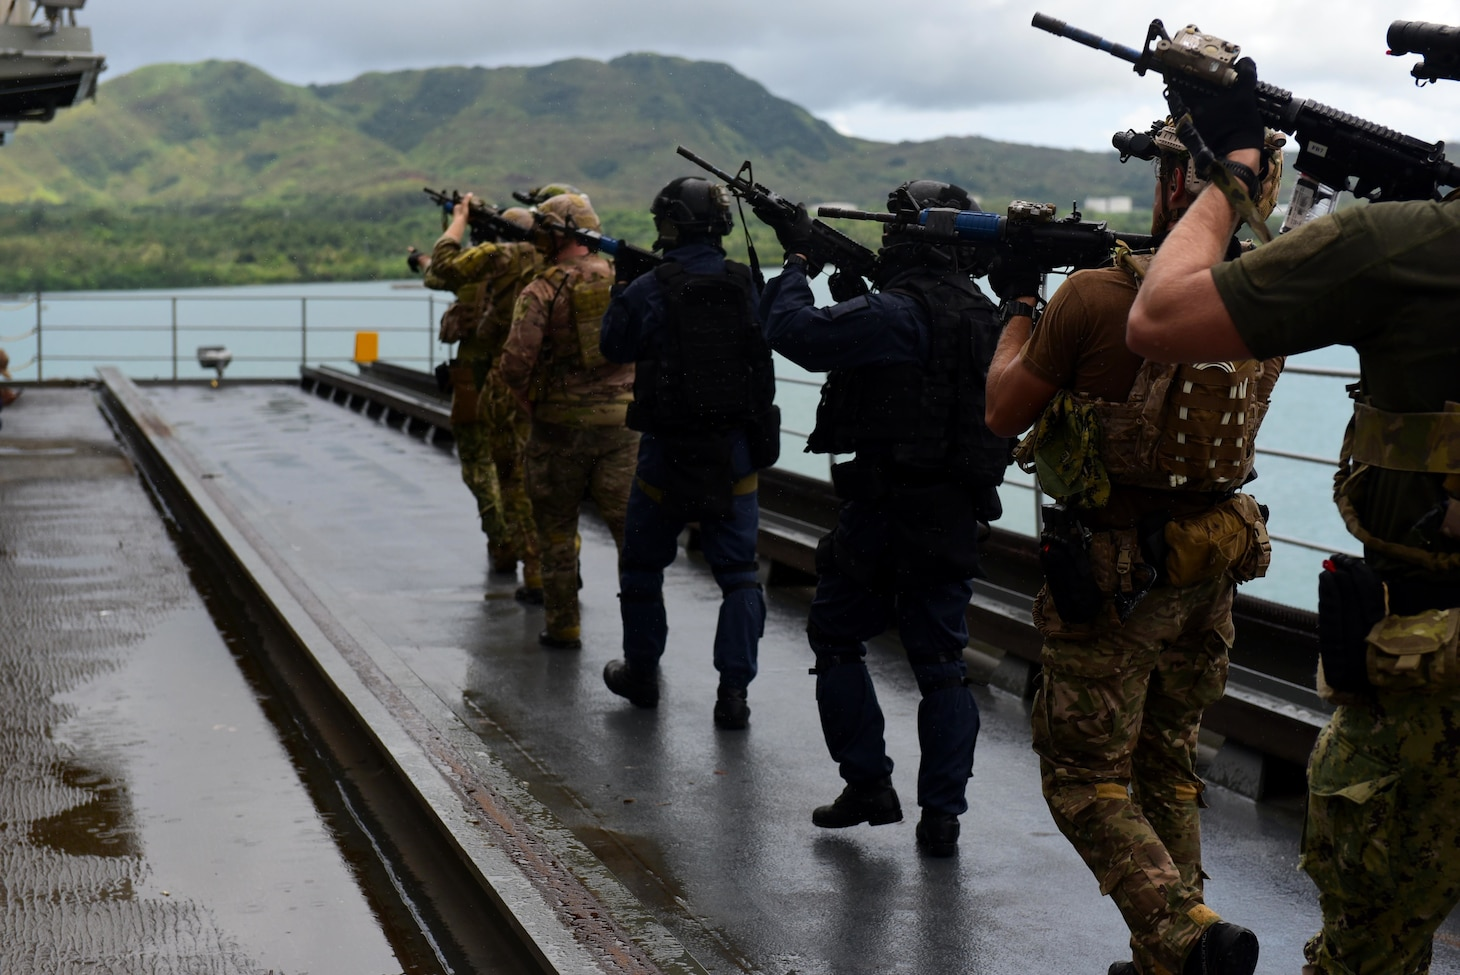 U.S. Naval Special Warfare operators and Japan Maritime Self-Defense Force sailors conduct a simulated visit, board, search, and seizure of USS Frank Cable (AS-40) as part of MALABAR 2021. MALABAR 2021 is an example of the enduring partnership between Australian, Indian, Japanese and American maritime forces, who routinely operate together in the Indo-Pacific, fostering a cooperative approach toward regional security and stability. Naval Special Warfare is the nation's premiere maritime special operations force and is uniquely positioned to extend the Fleet's reach and deliver all-domain options for naval and joint force commanders.